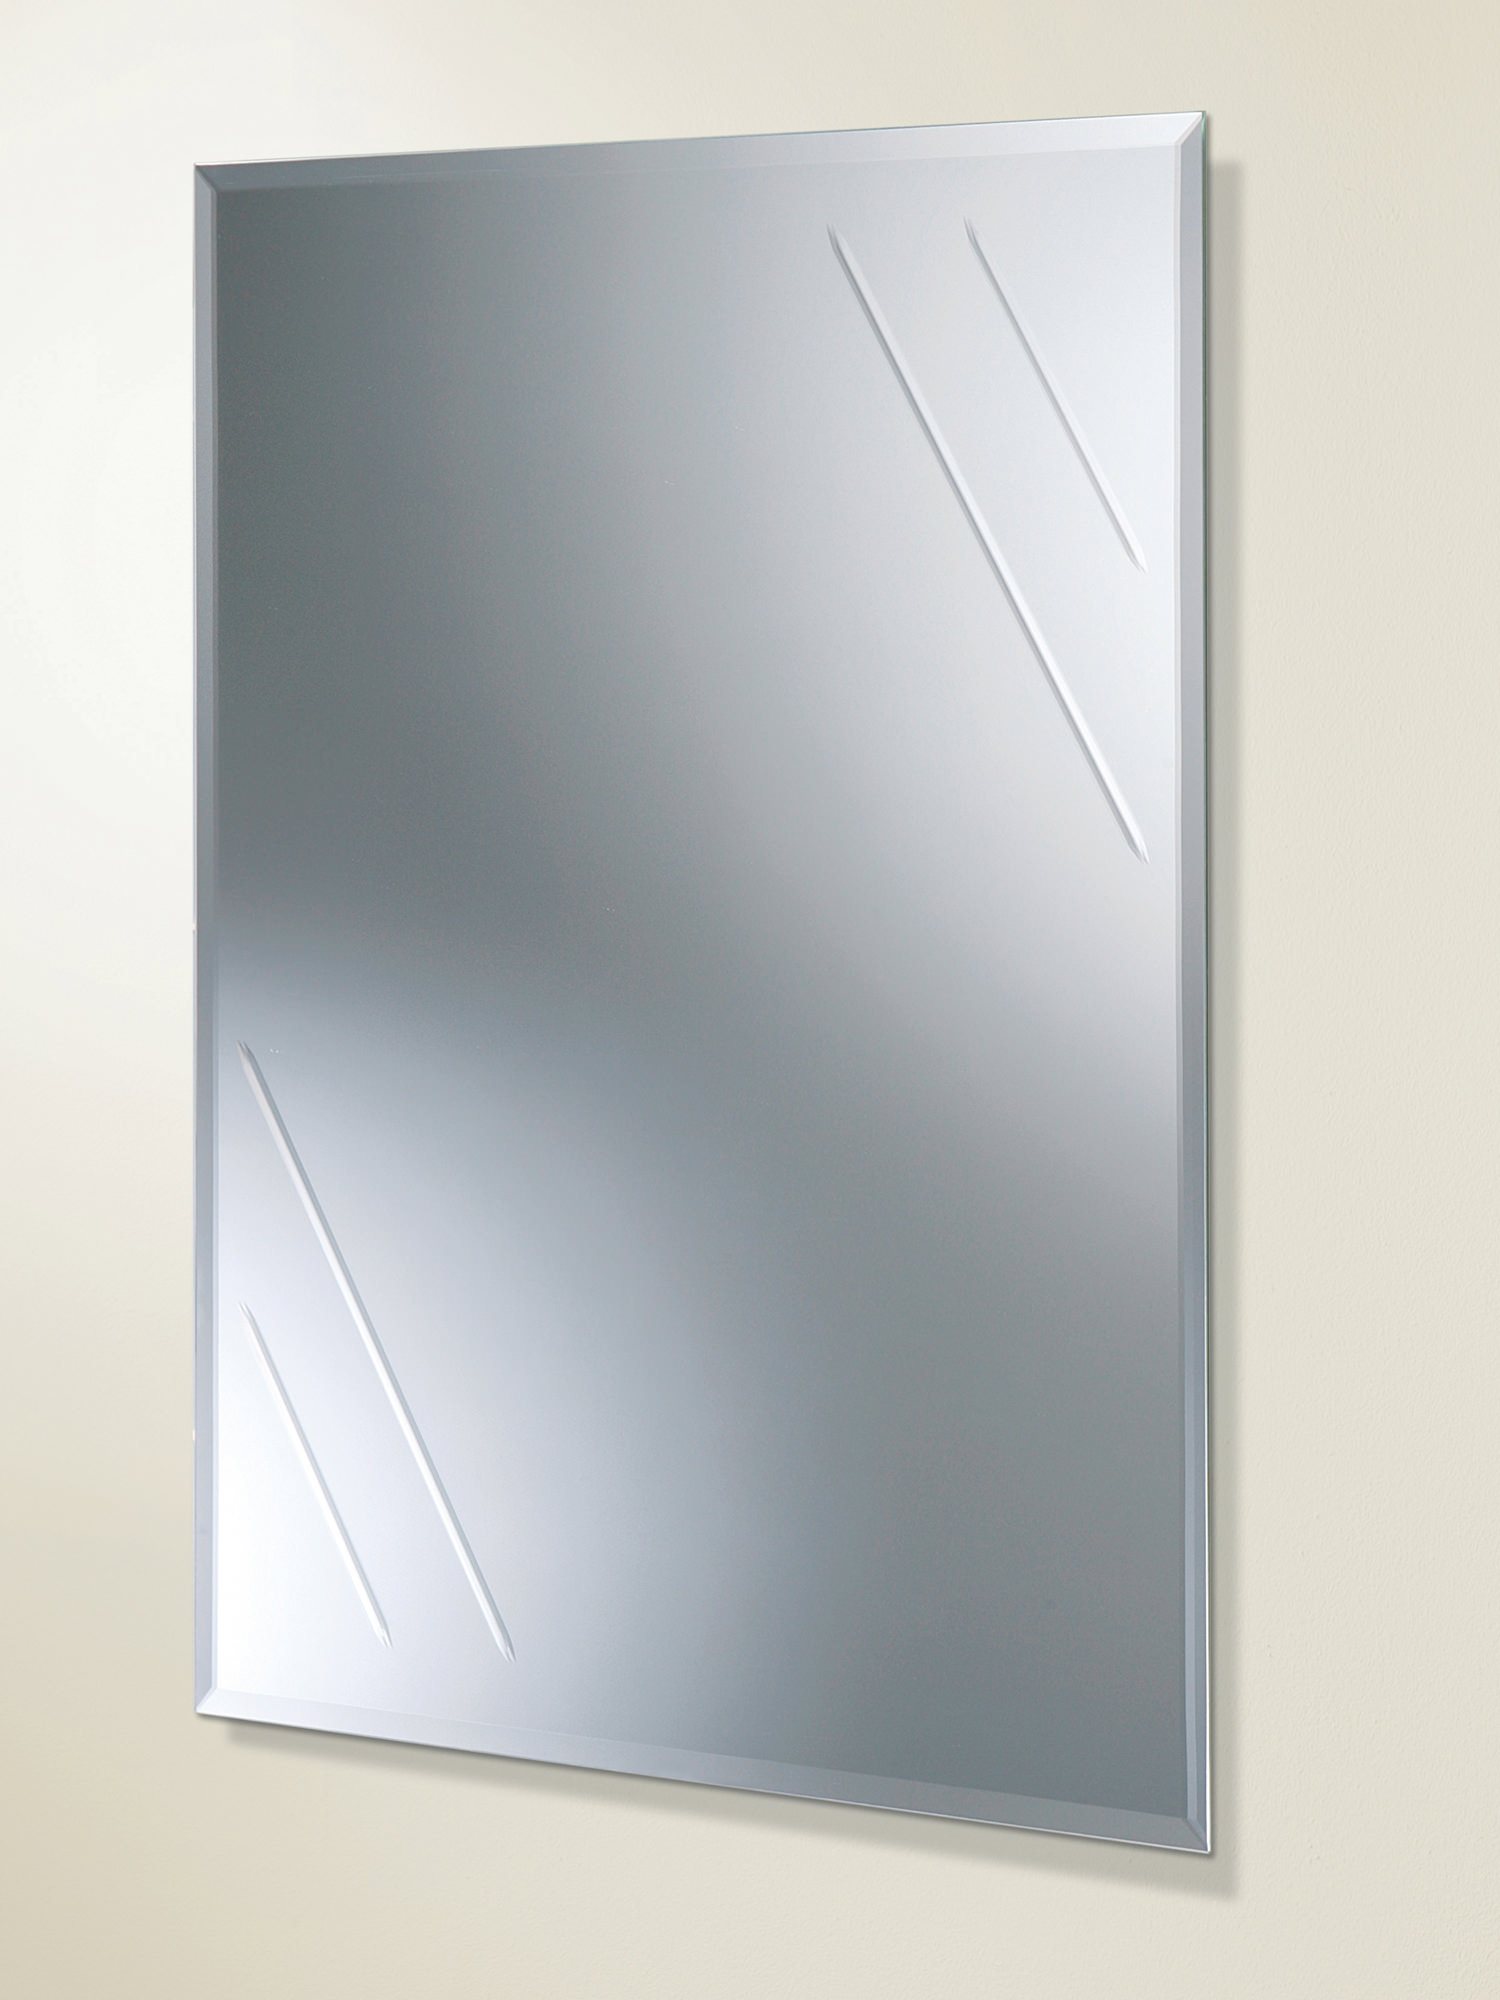 Hib Albina Rectangular Bevelled Edge Bathroom Mirror 61164100 Inside Bevelled Edge Mirrors (View 5 of 15)